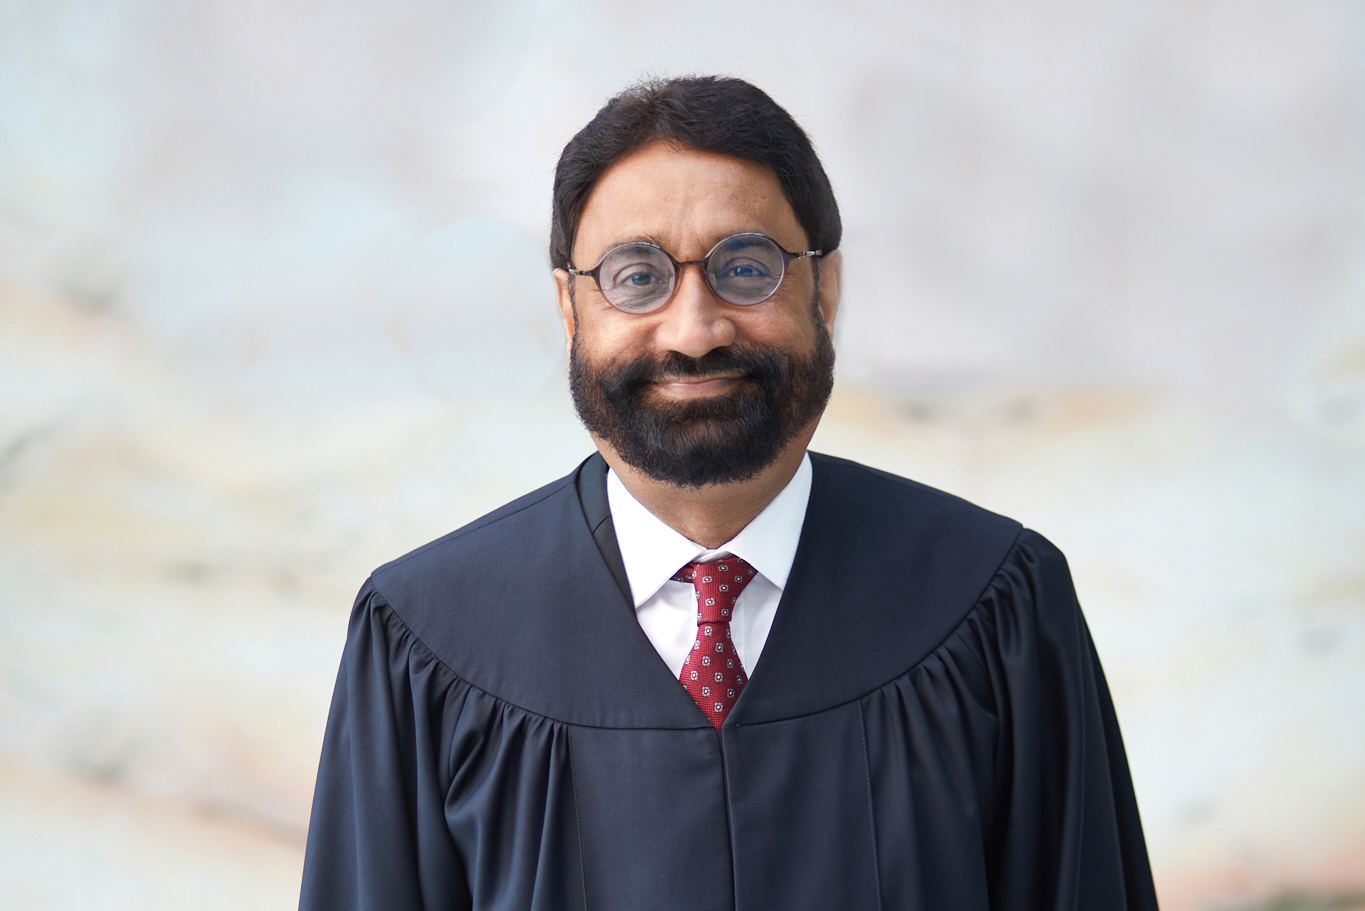 Dedar Singh Gill has been appointed as a judge of the High Court by President Halimah Yacob. Photo courtesy: www.supremecourt.gov.sg